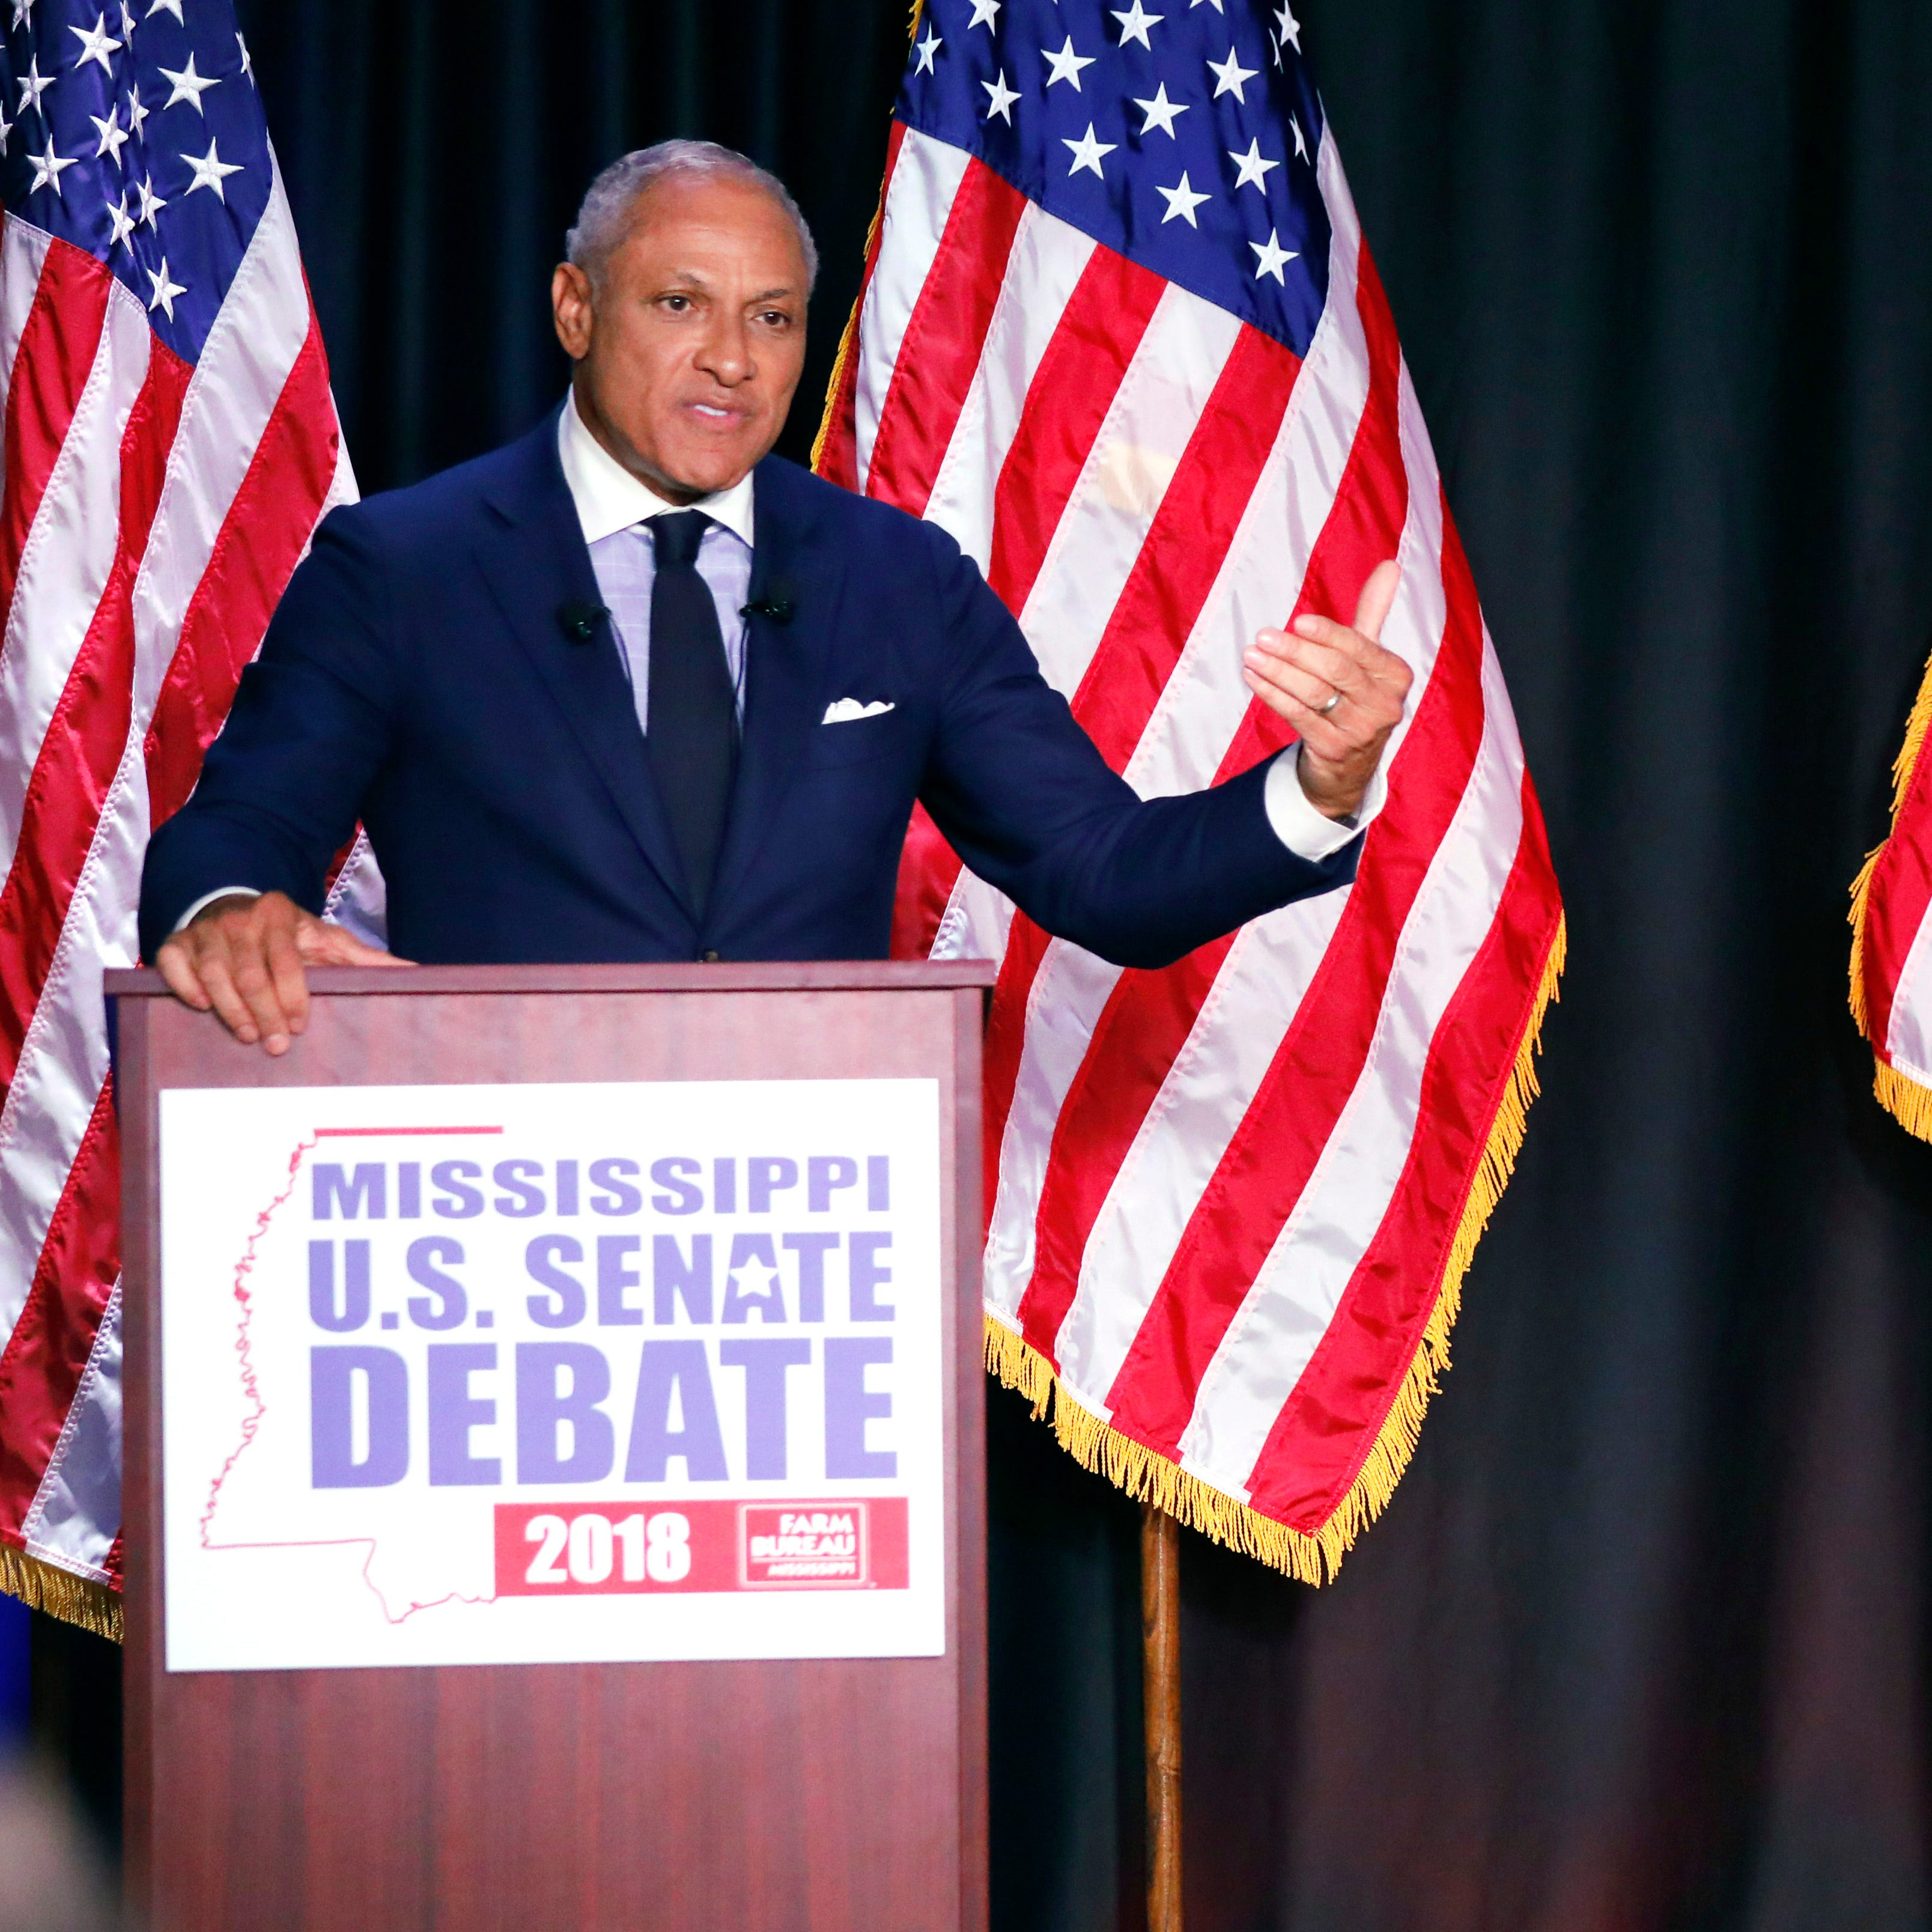 Scandals, health care, 'public hangings' and more: Key takeaways from #MSSen debate